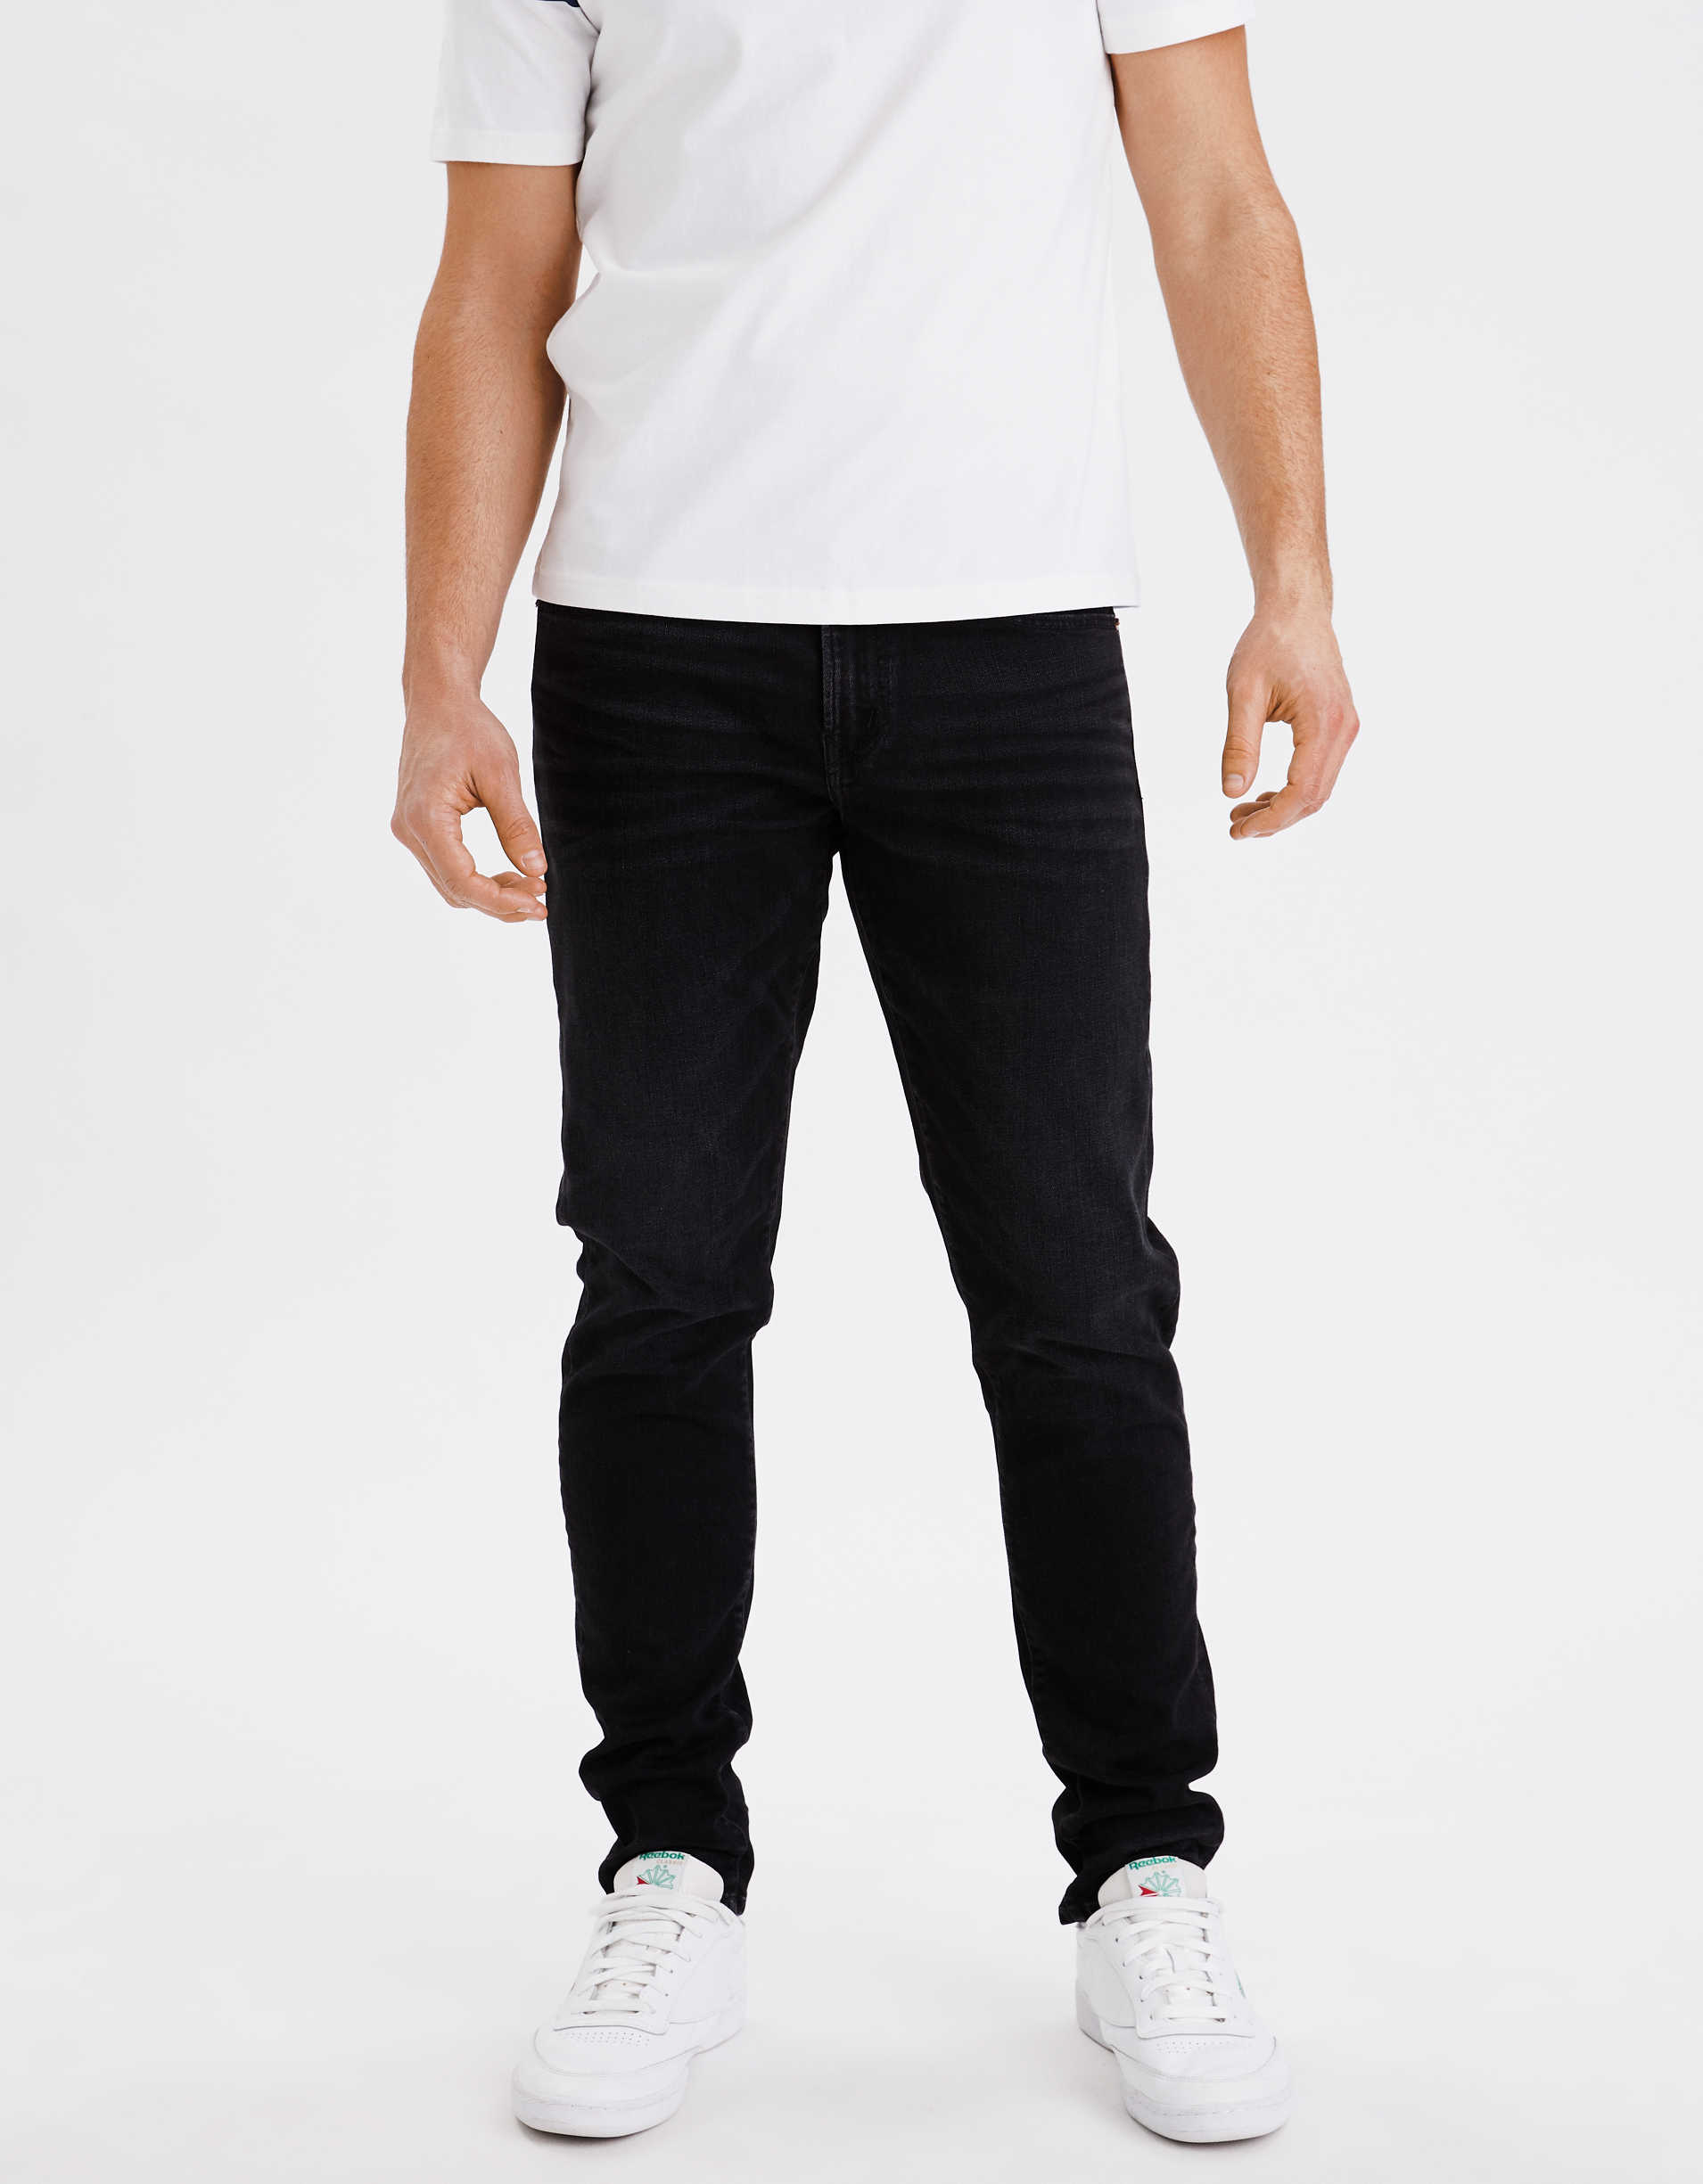 AE Ne(x)t Level AirFlex Athletic Skinny Jean